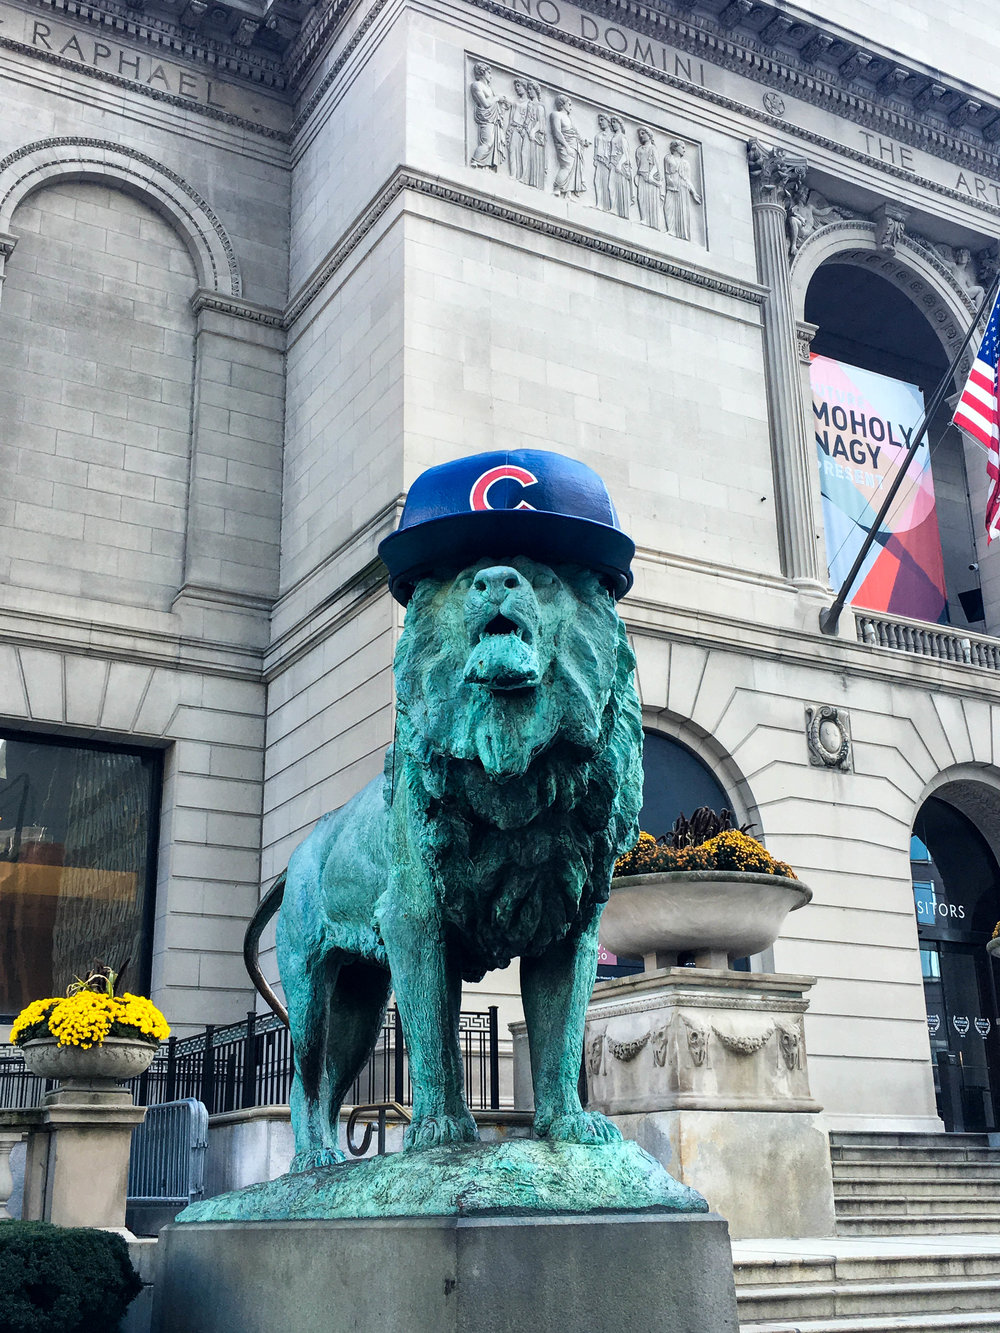 All of Chicago in the Cubs spirit